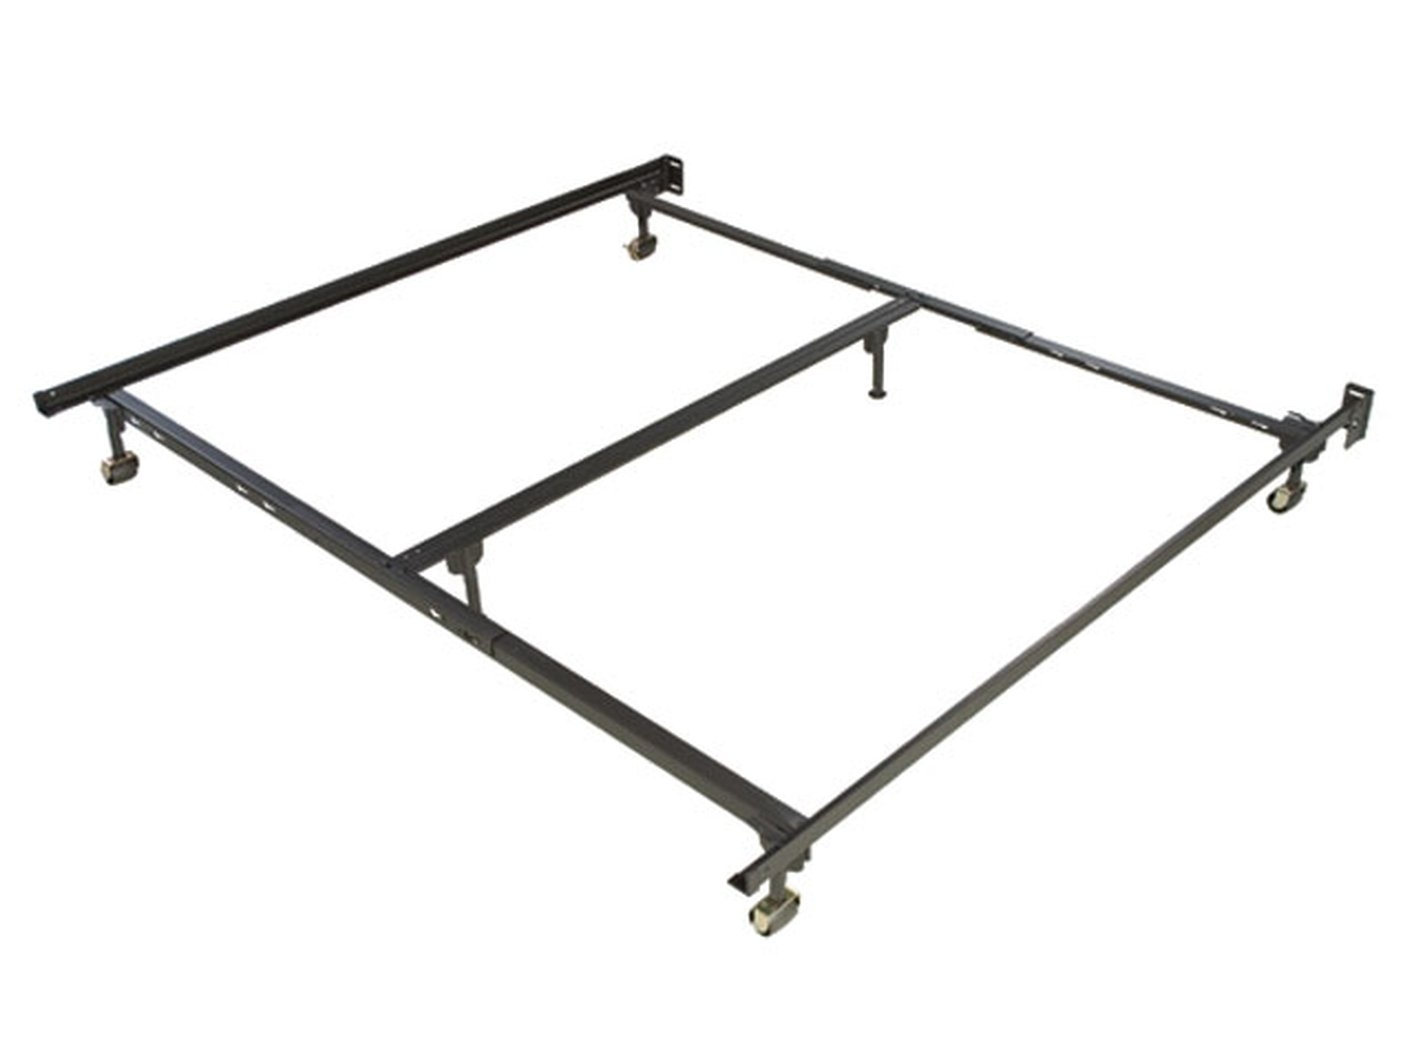 Steel Bed Frame King Size